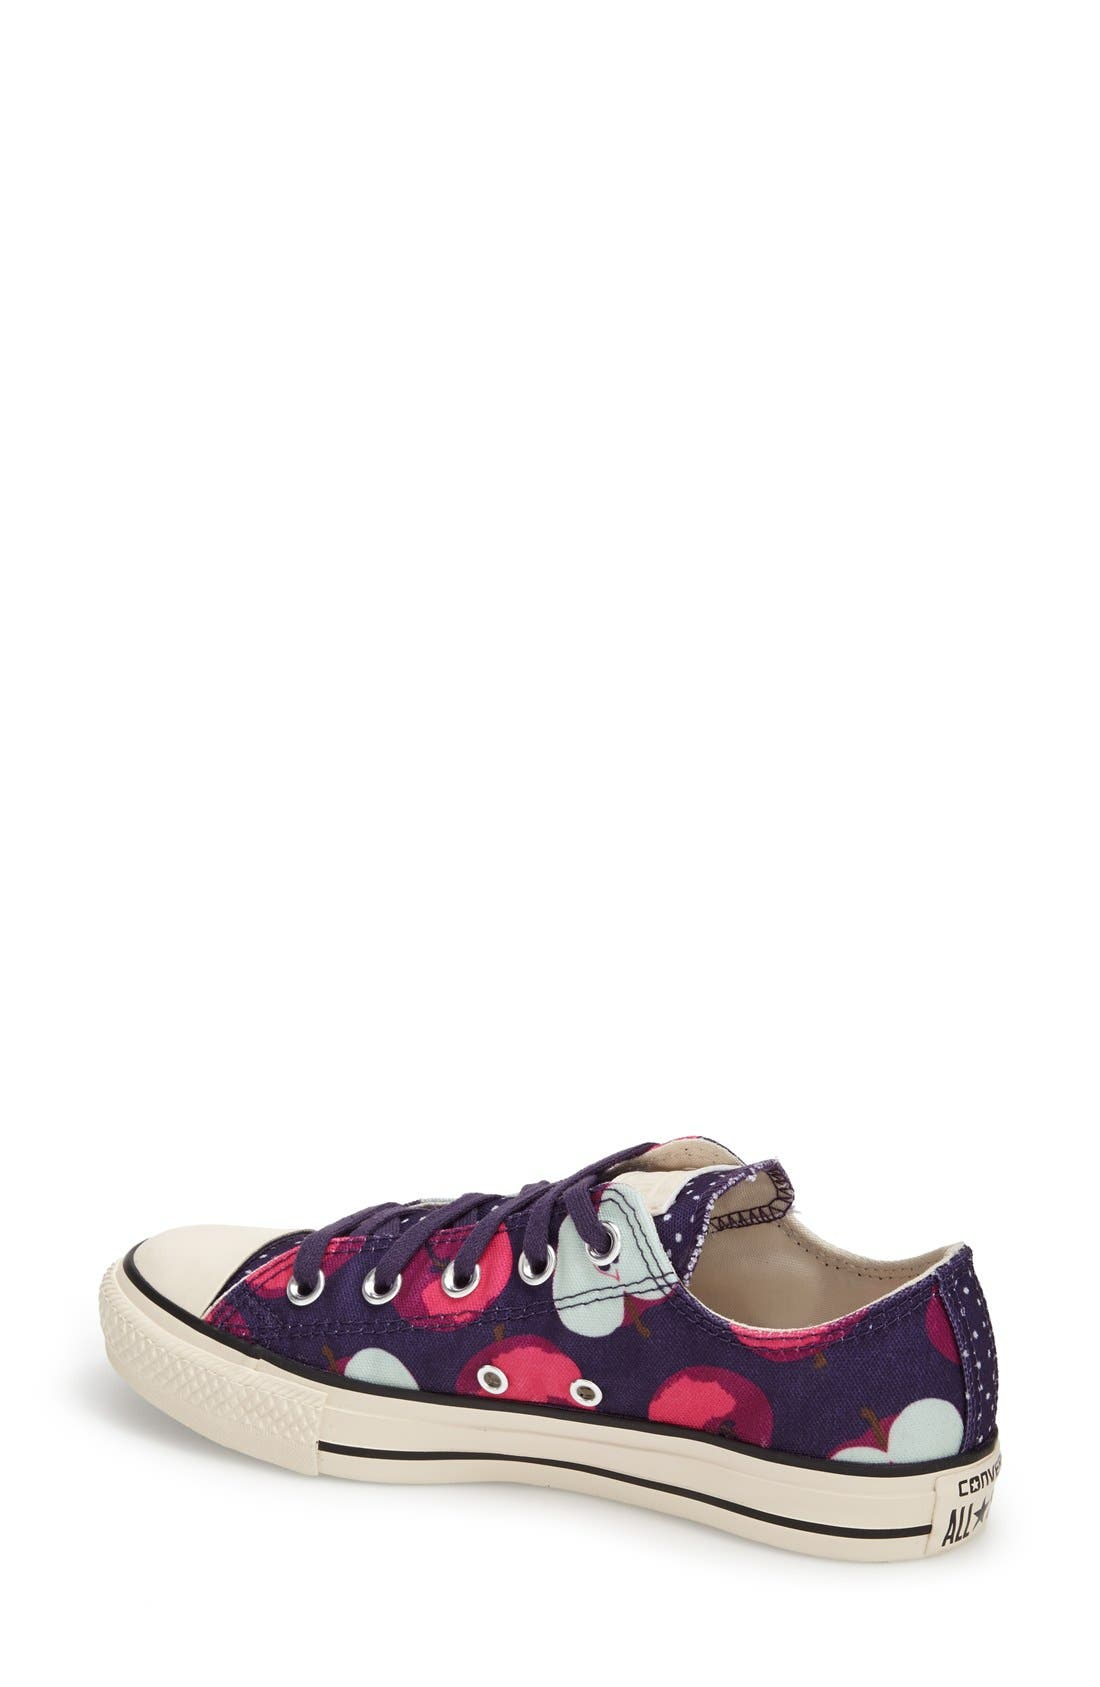 Alternate Image 2  - Converse Chuck Taylor® All Star® Apple Print Sneaker (Women)